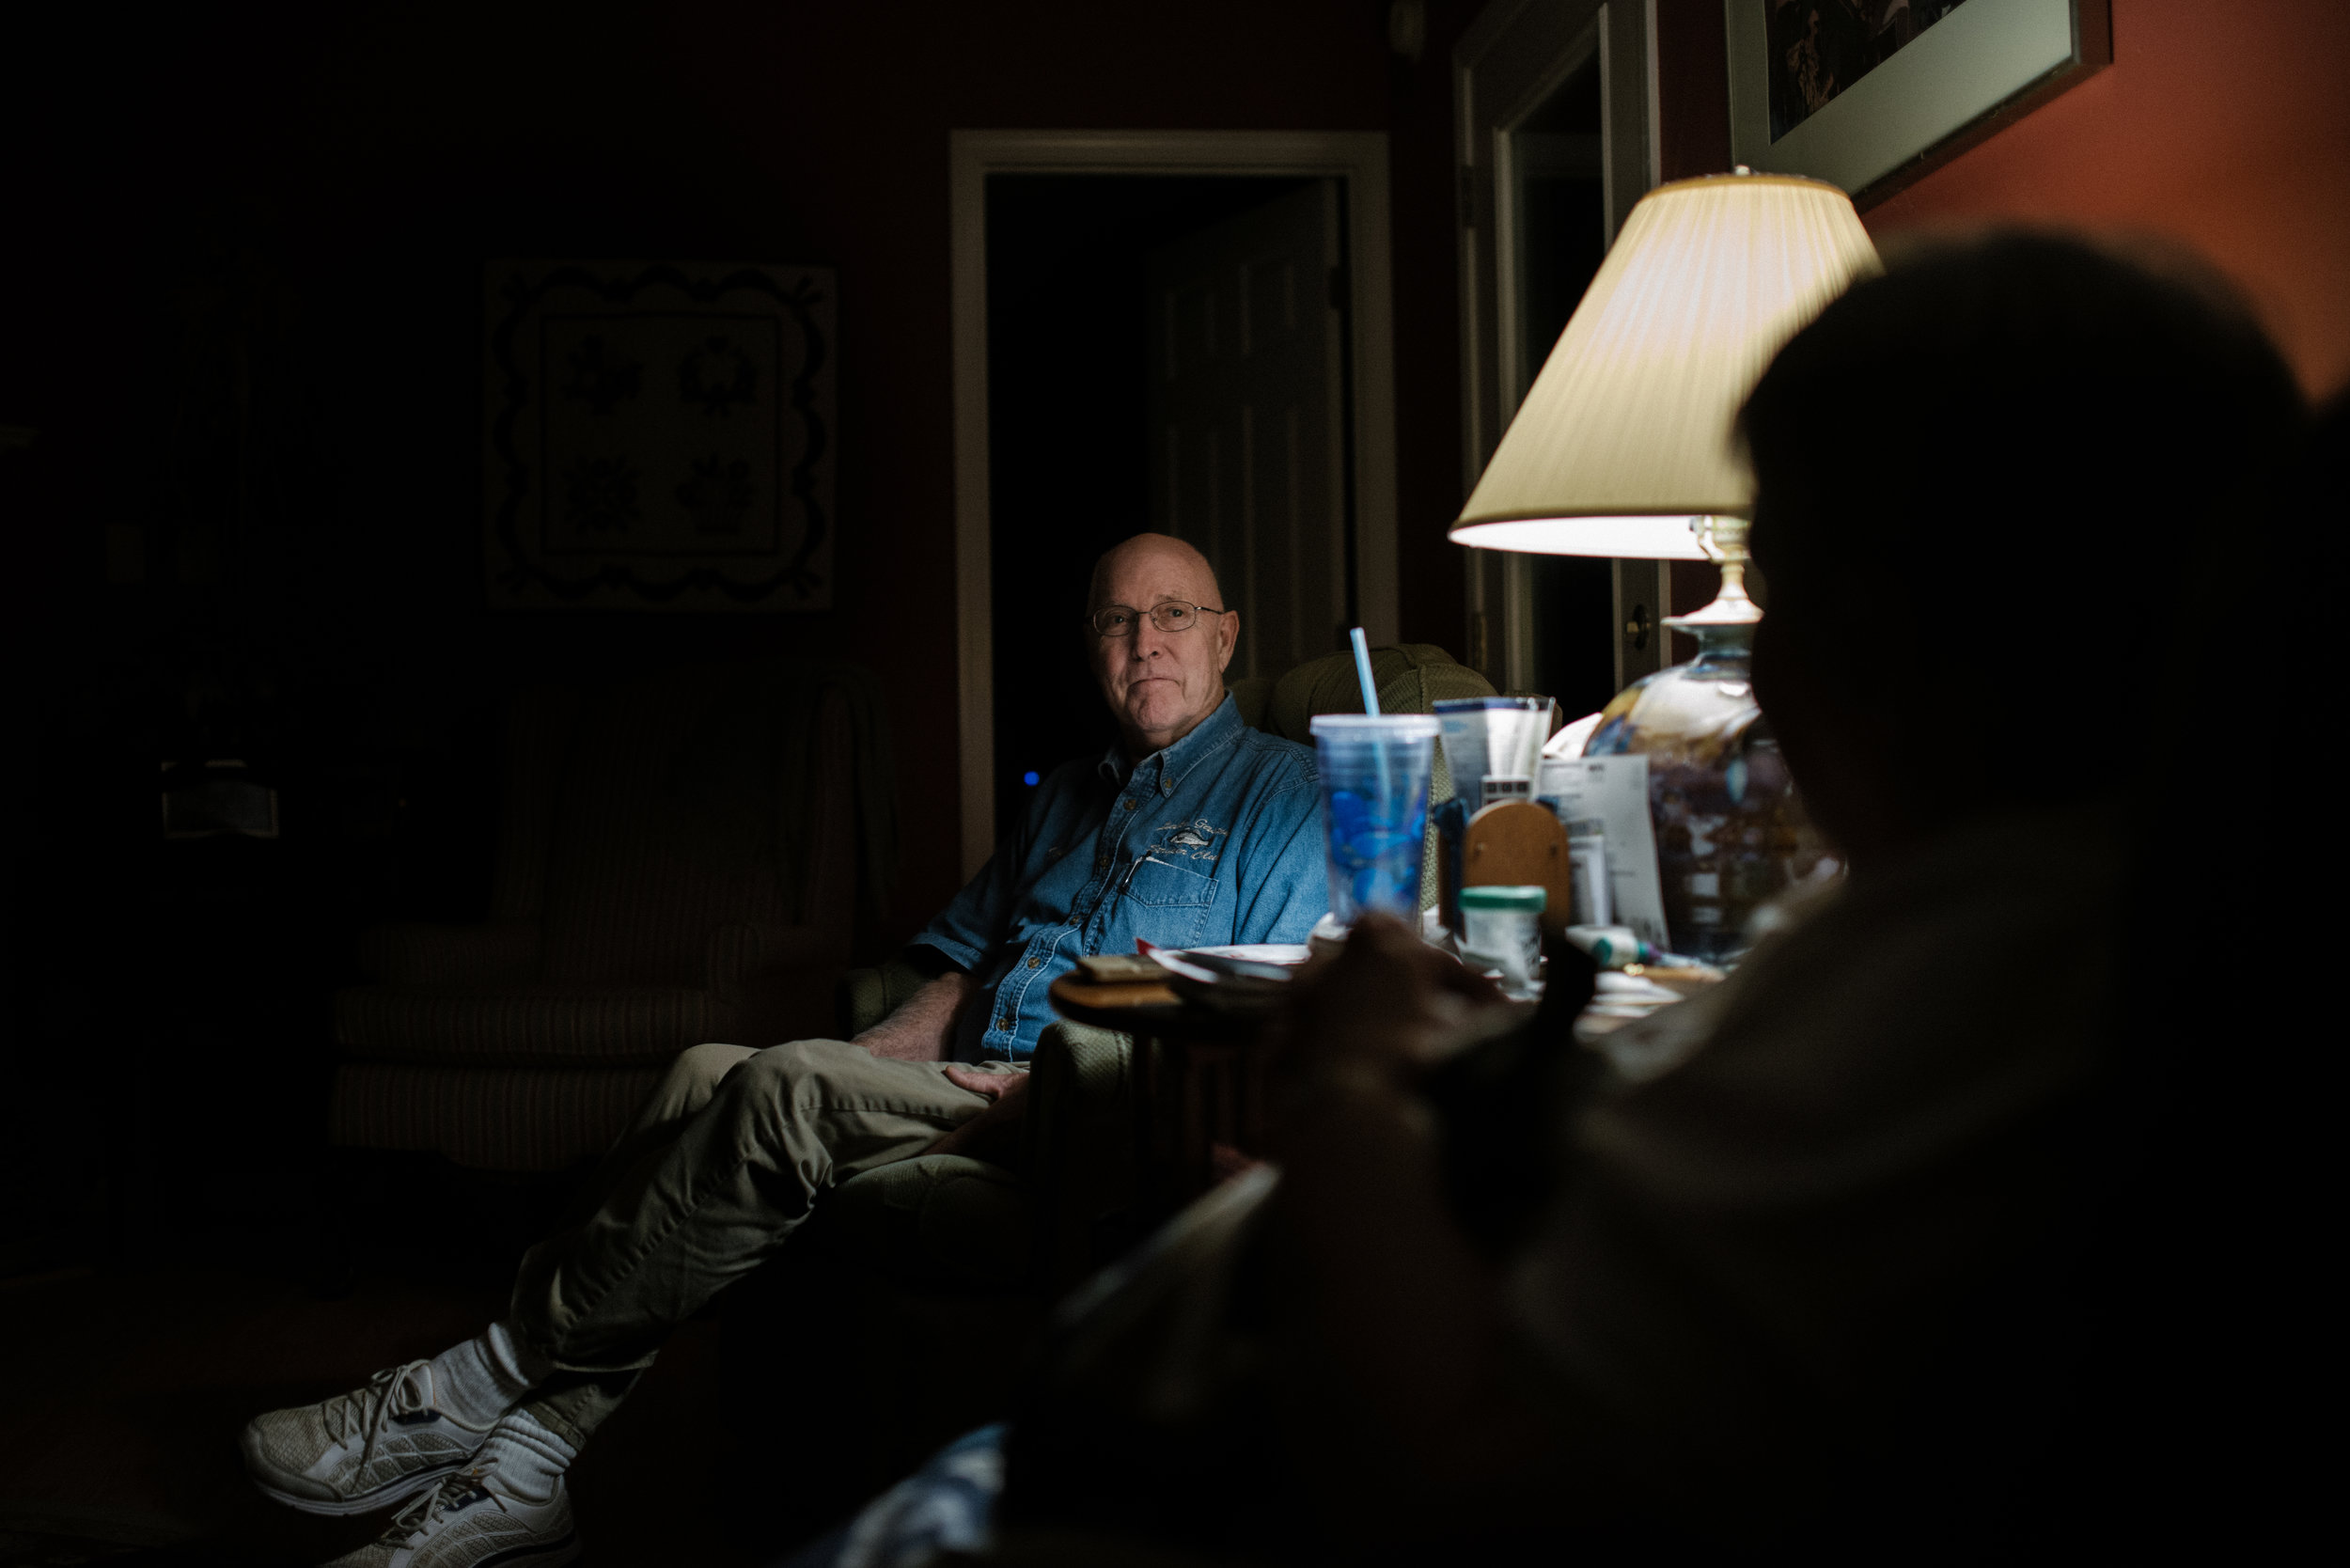 Thomas C. Field, 78, talks with his wife Josephine A. Field, 78, about his heath situation on Wednesday, November 4th, 2015 in their Lake Gaston House in Littleton, North Carolina.